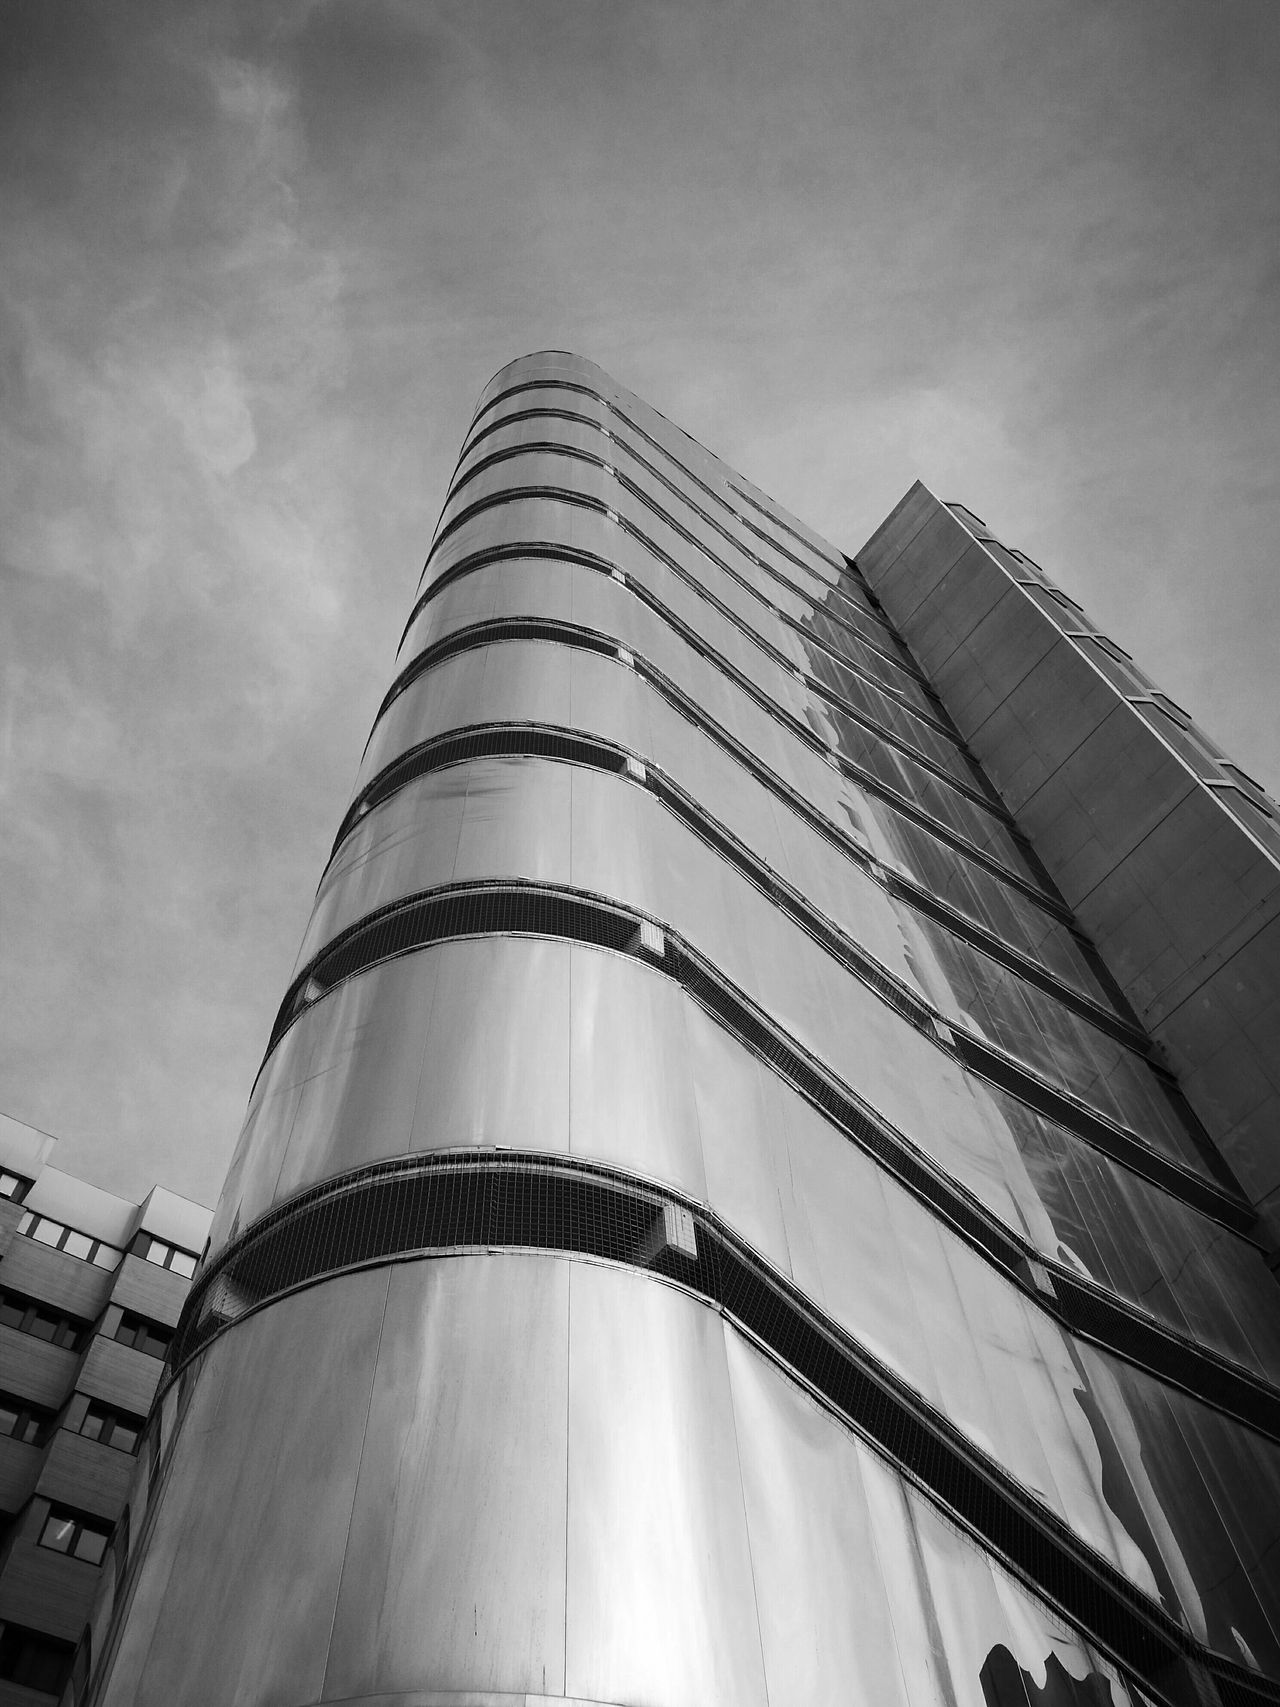 Architecture Low Angle View Cagliari Urban City P9